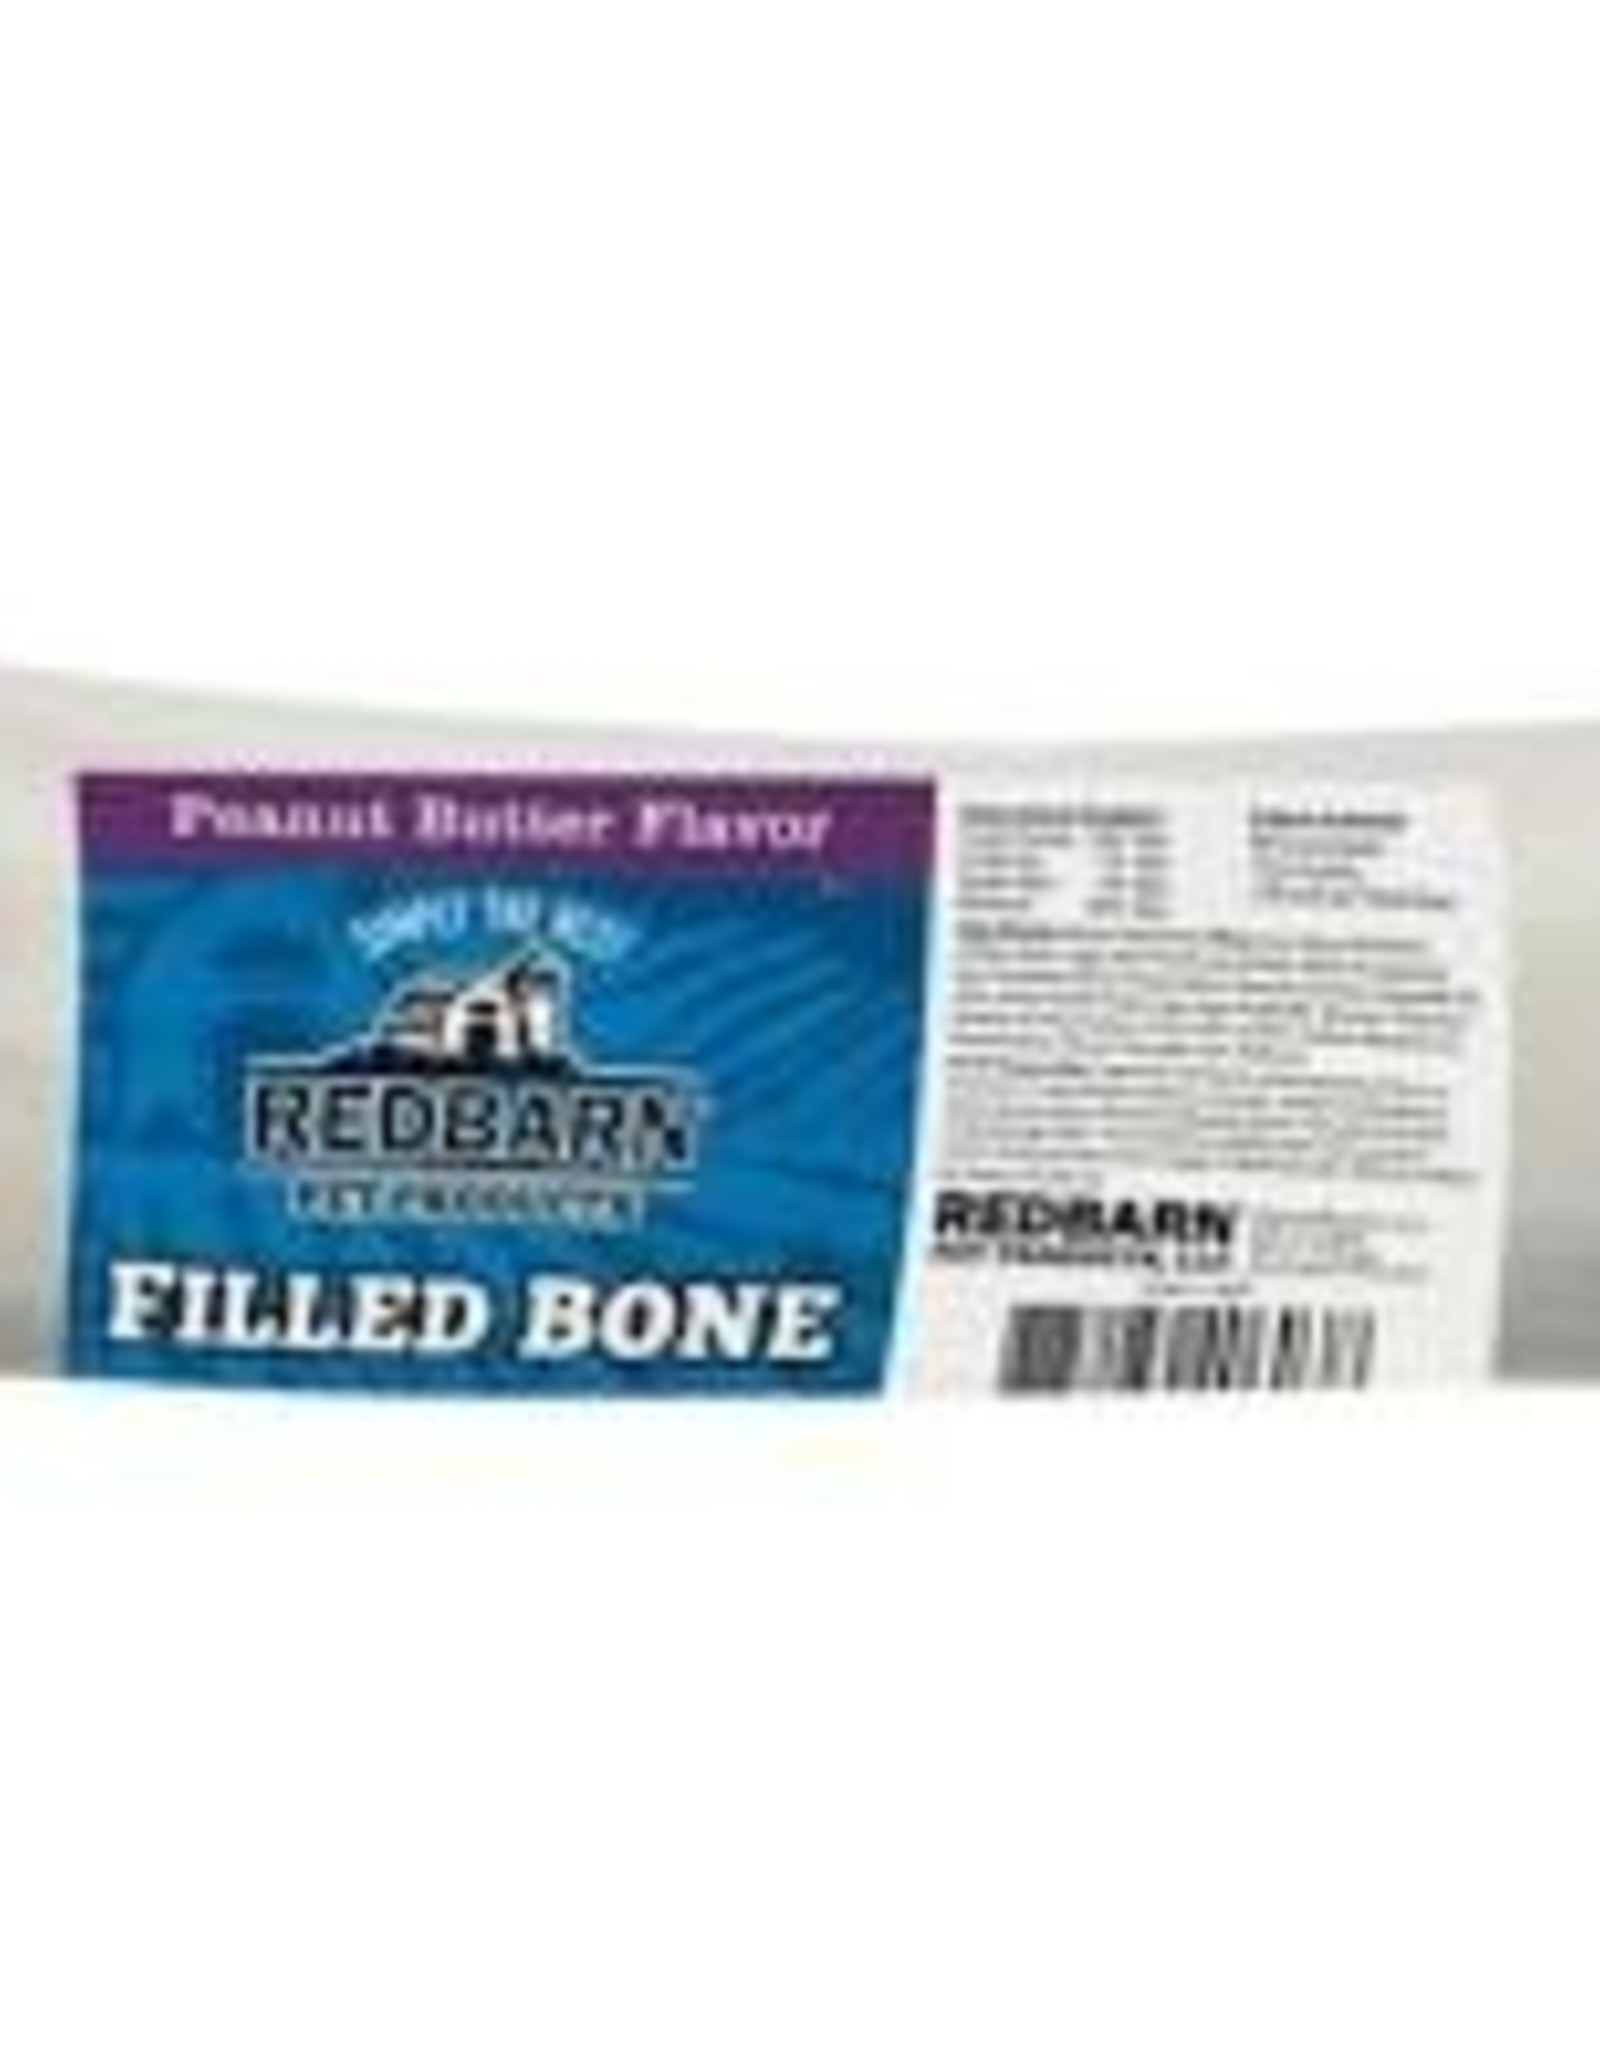 Redbarn PB filled bone 6 inch